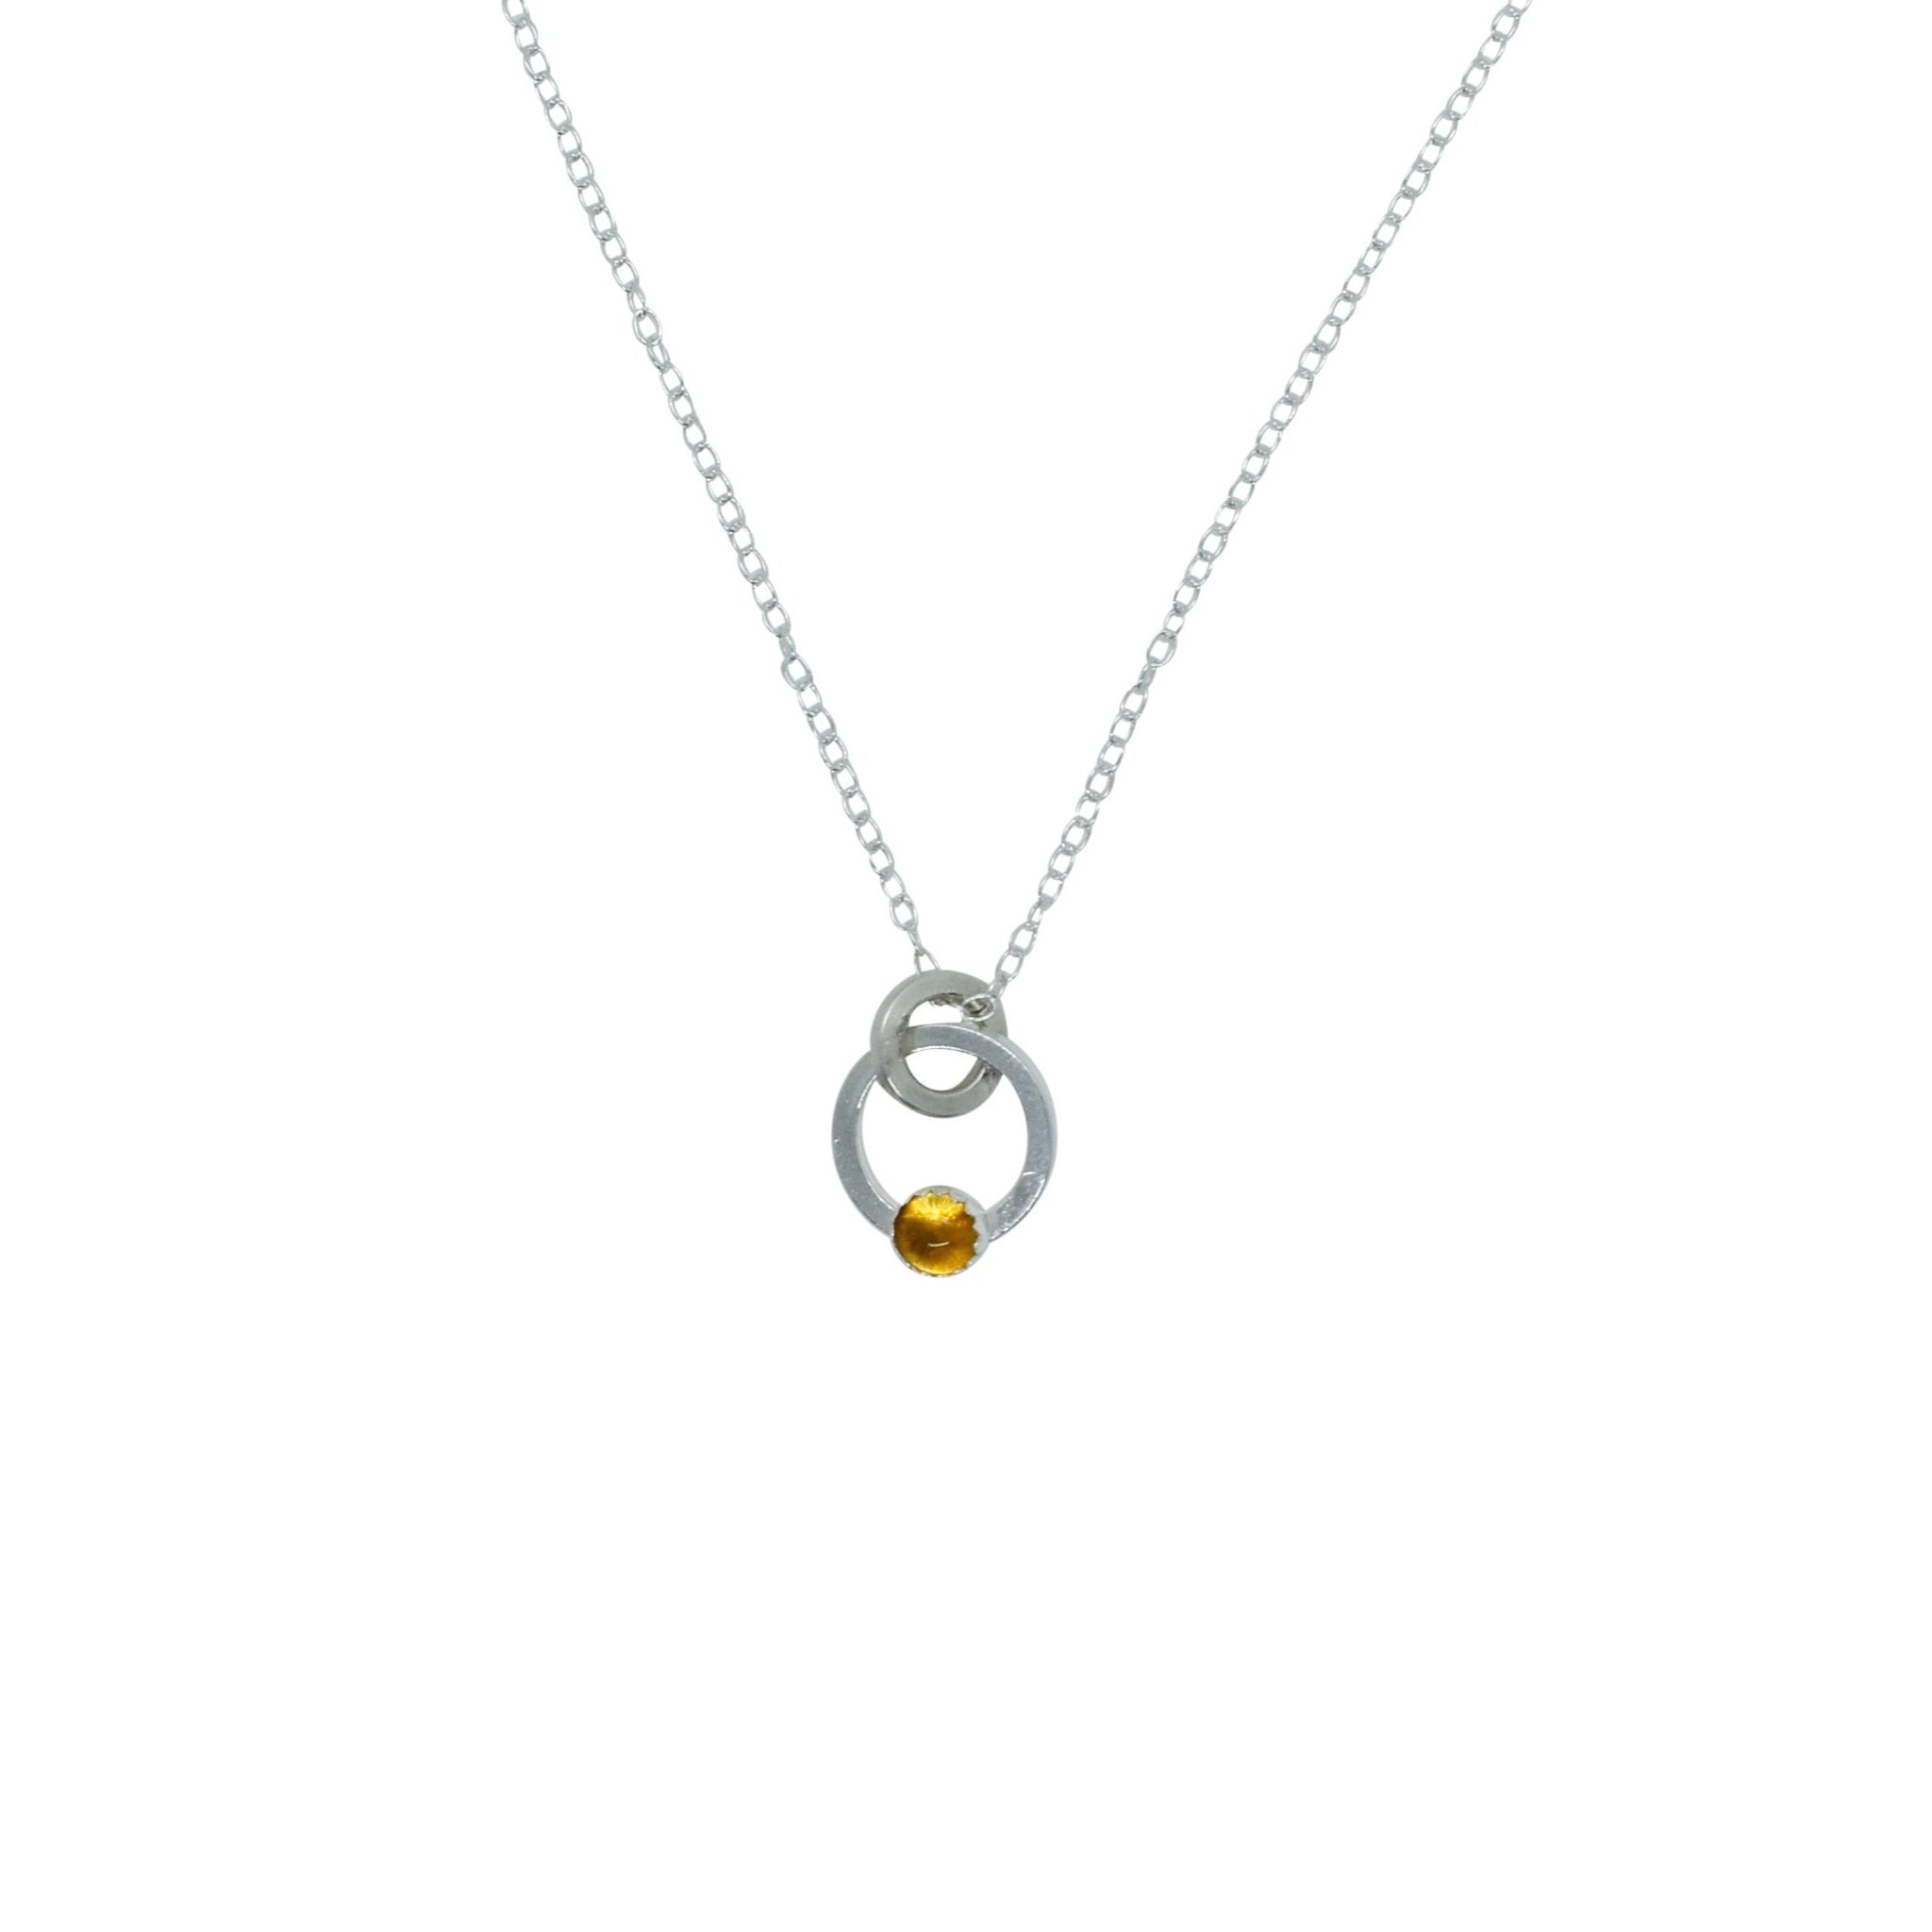 Element Pendant - multiple stone options